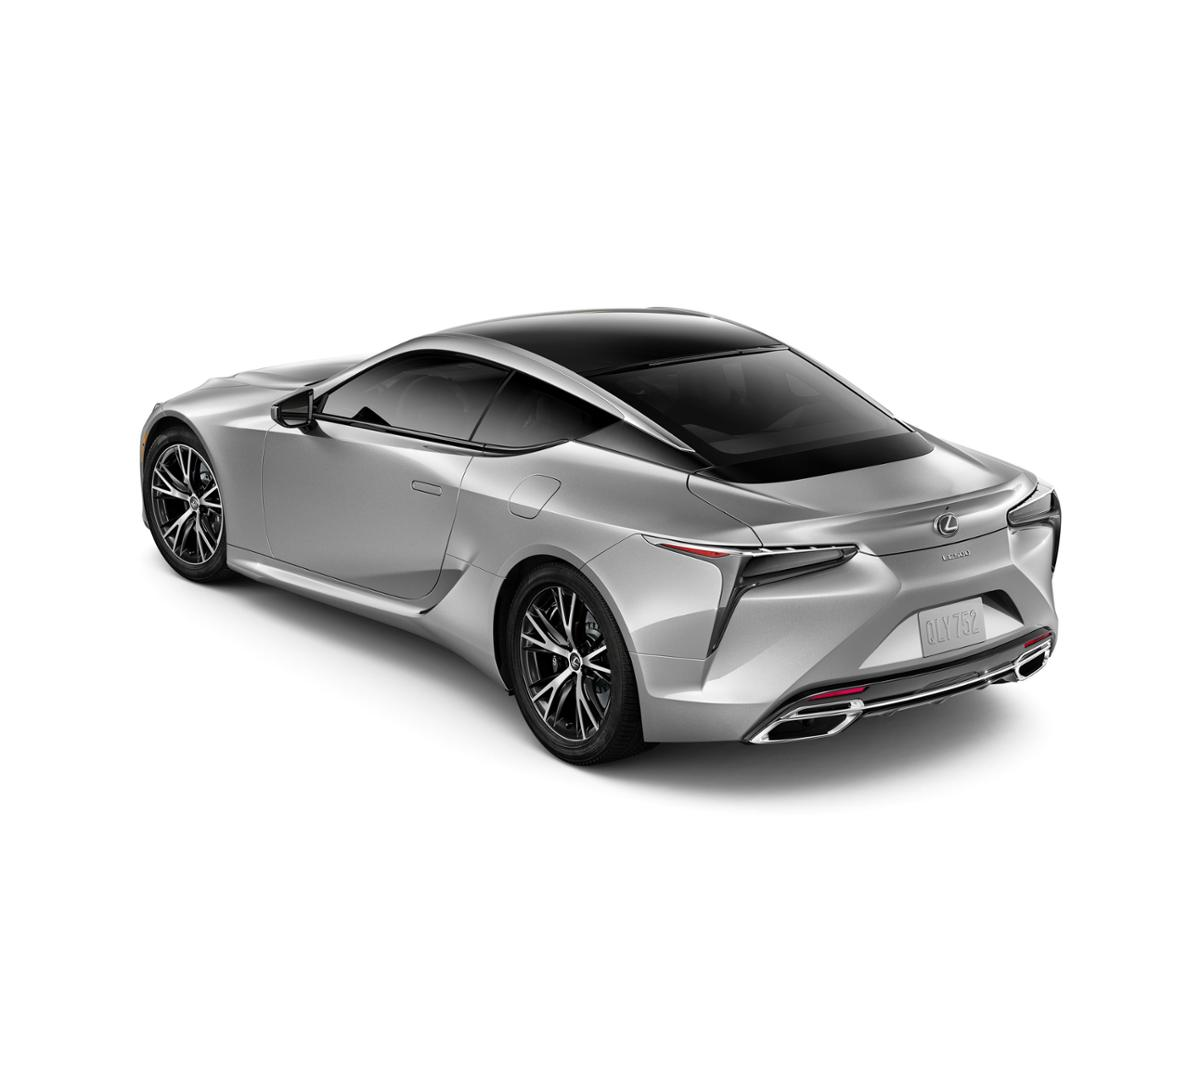 Lexus Dealers In Md >> 2018 Lexus LC 500 in Annapolis, MD - Sheehy Lexus of Annapolis - M11111